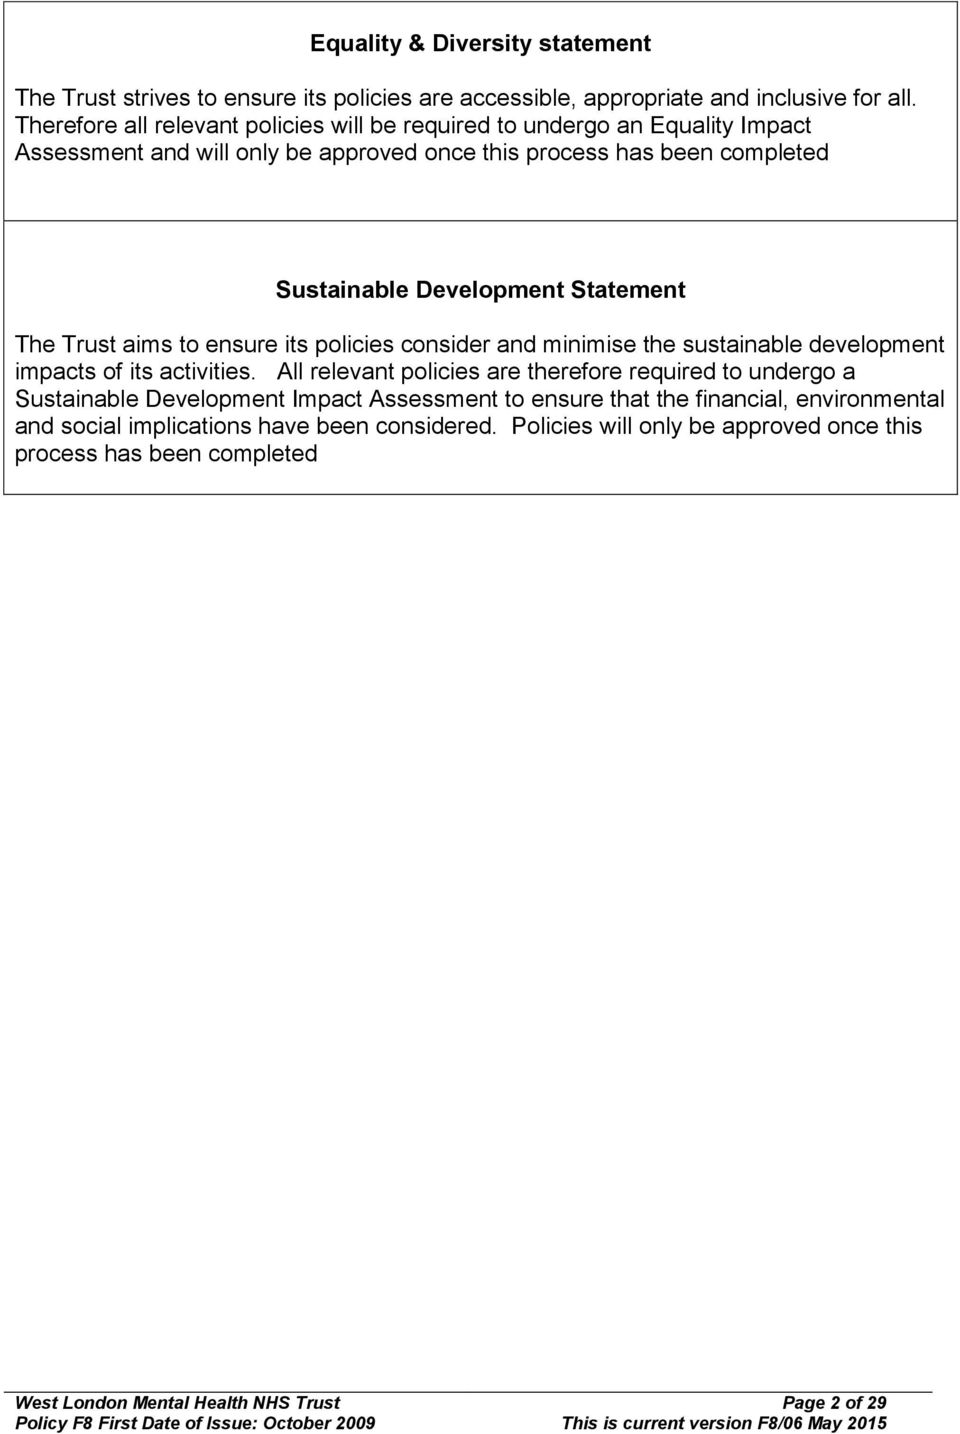 Statement The Trust aims to ensure its policies consider and minimise the sustainable development impacts of its activities.